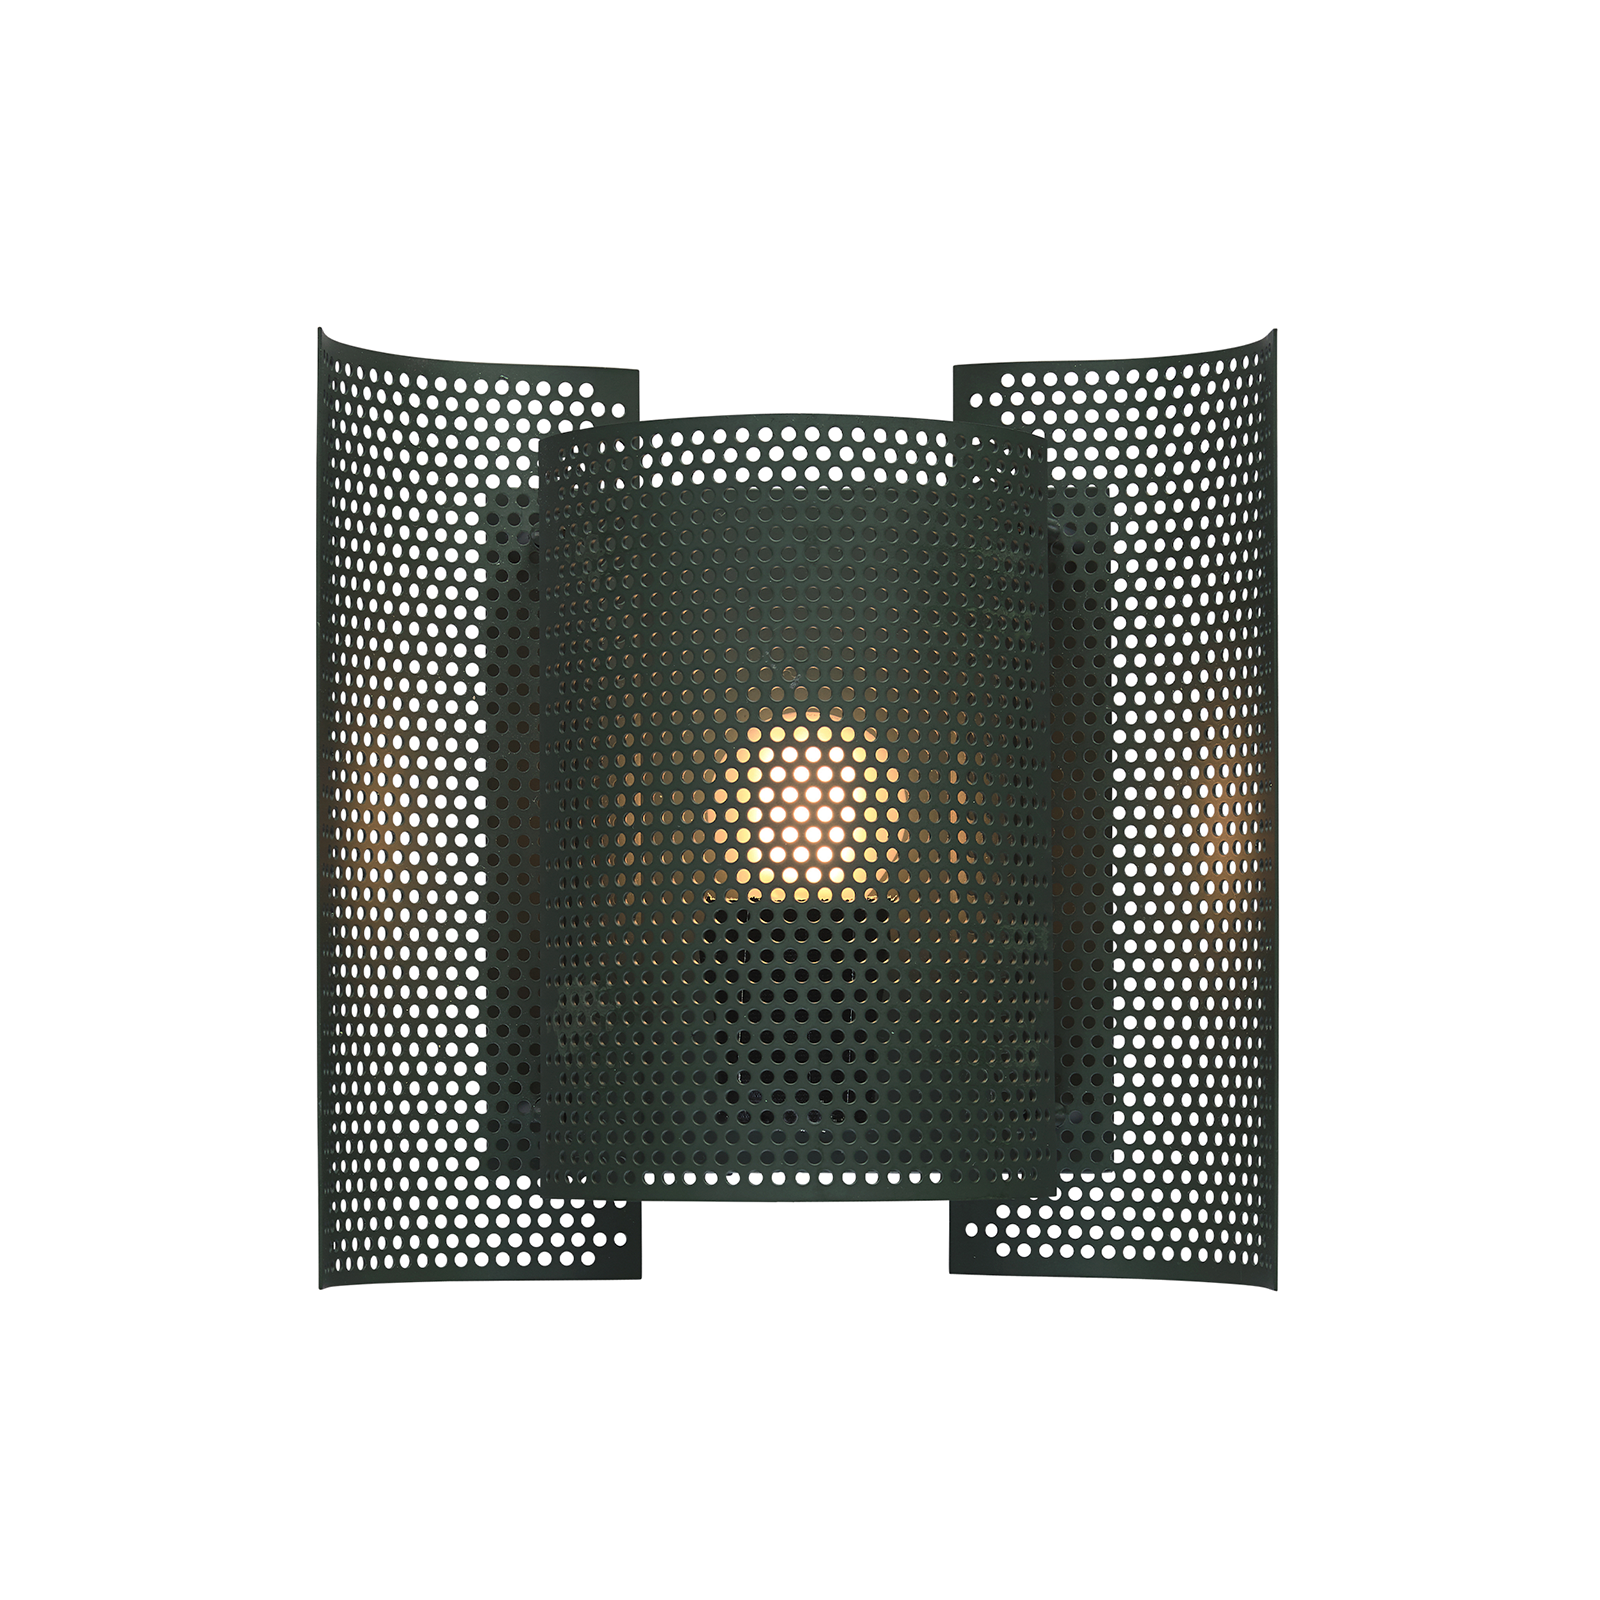 Northern Butterfly Perforated Wall Lamp 蝴蝶 壁燈 - 特殊網面版